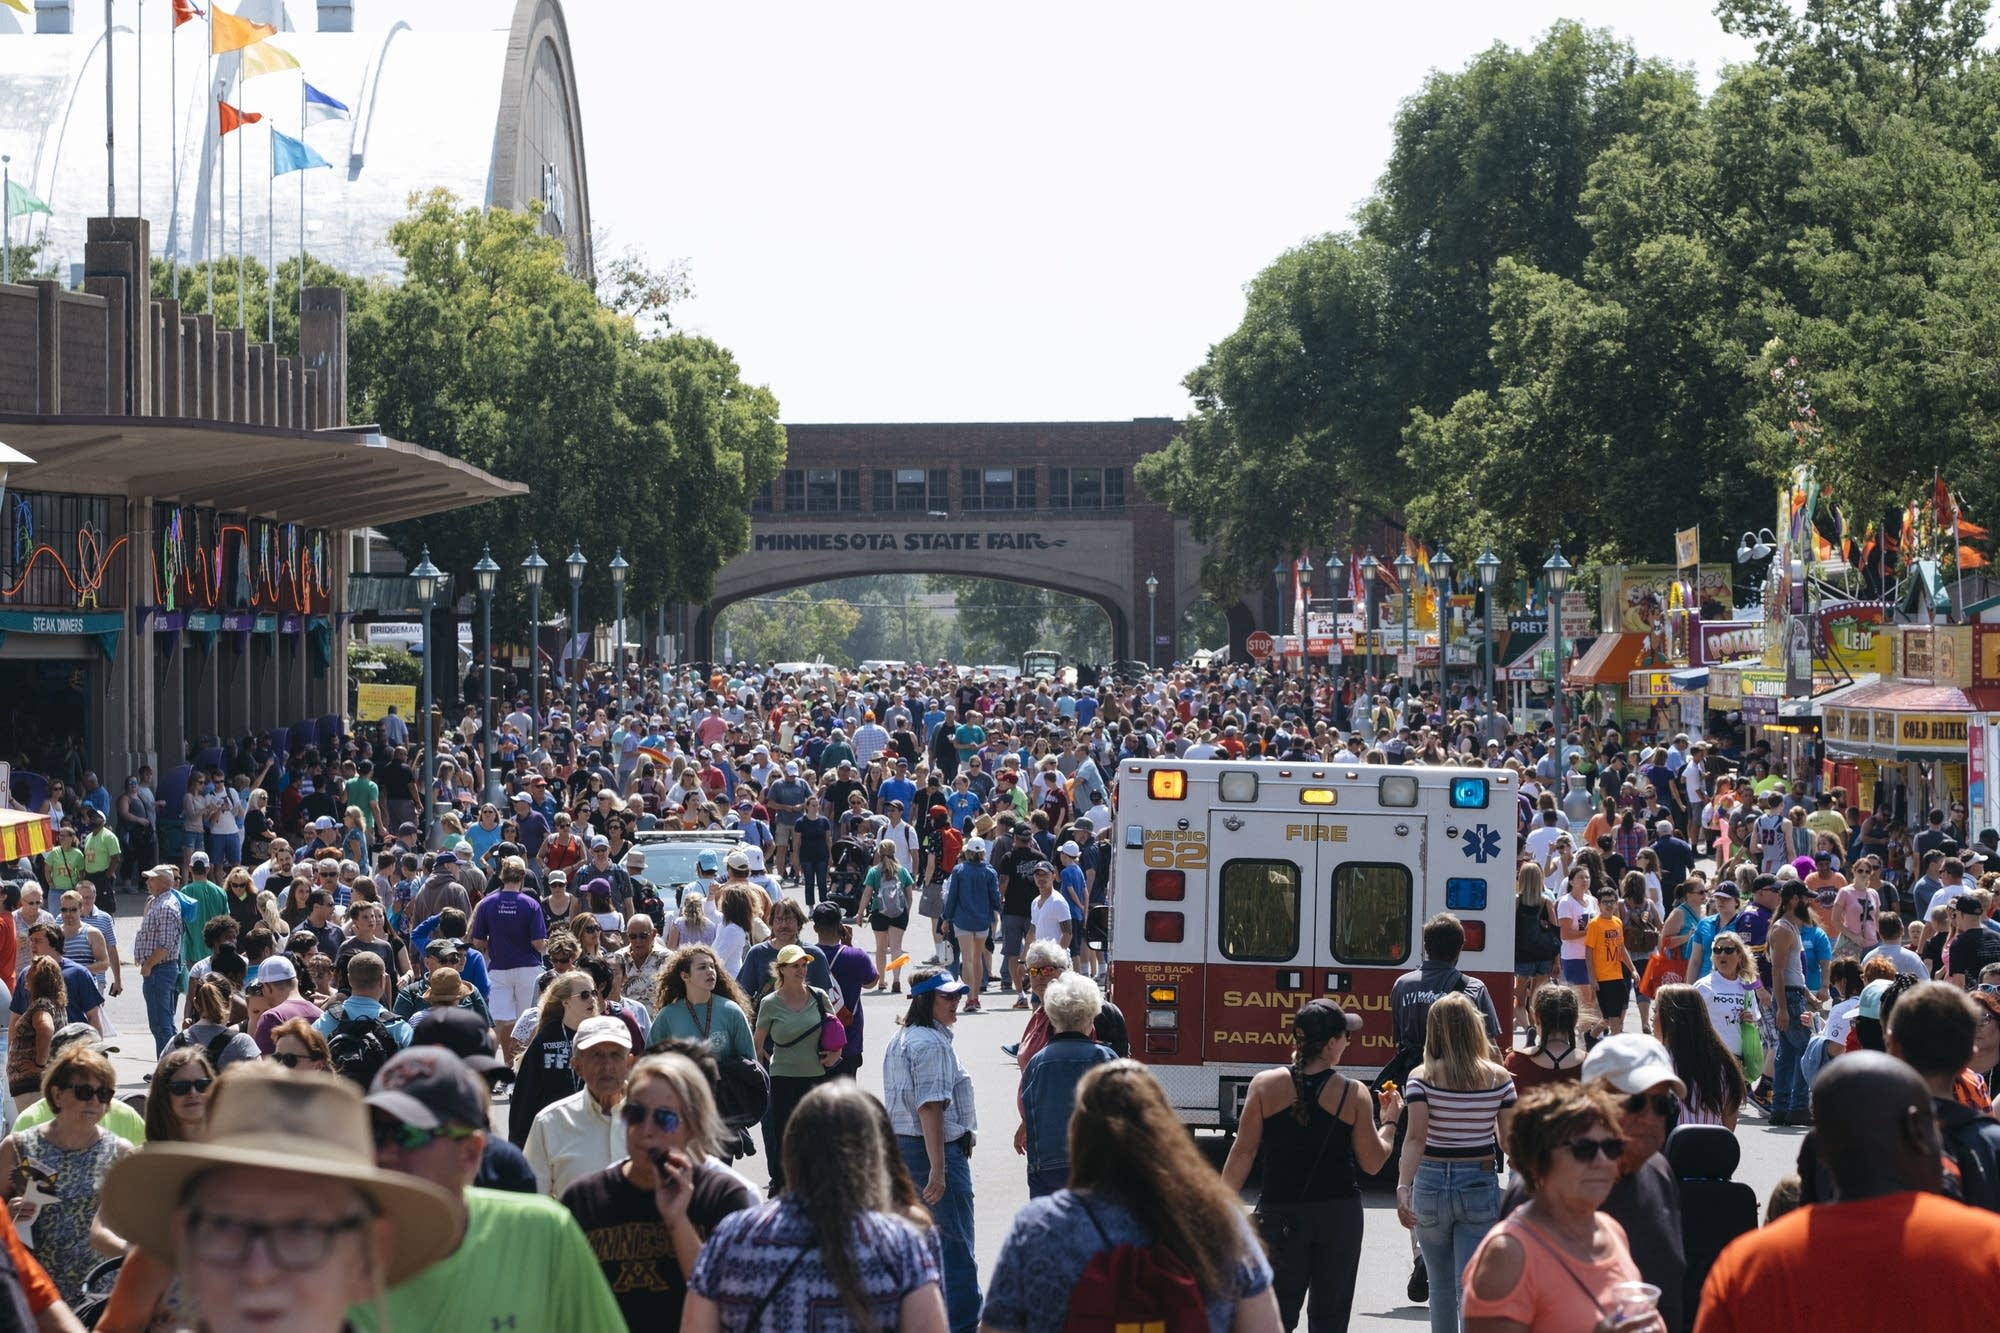 New York State Fair passes one million visitors mark...again